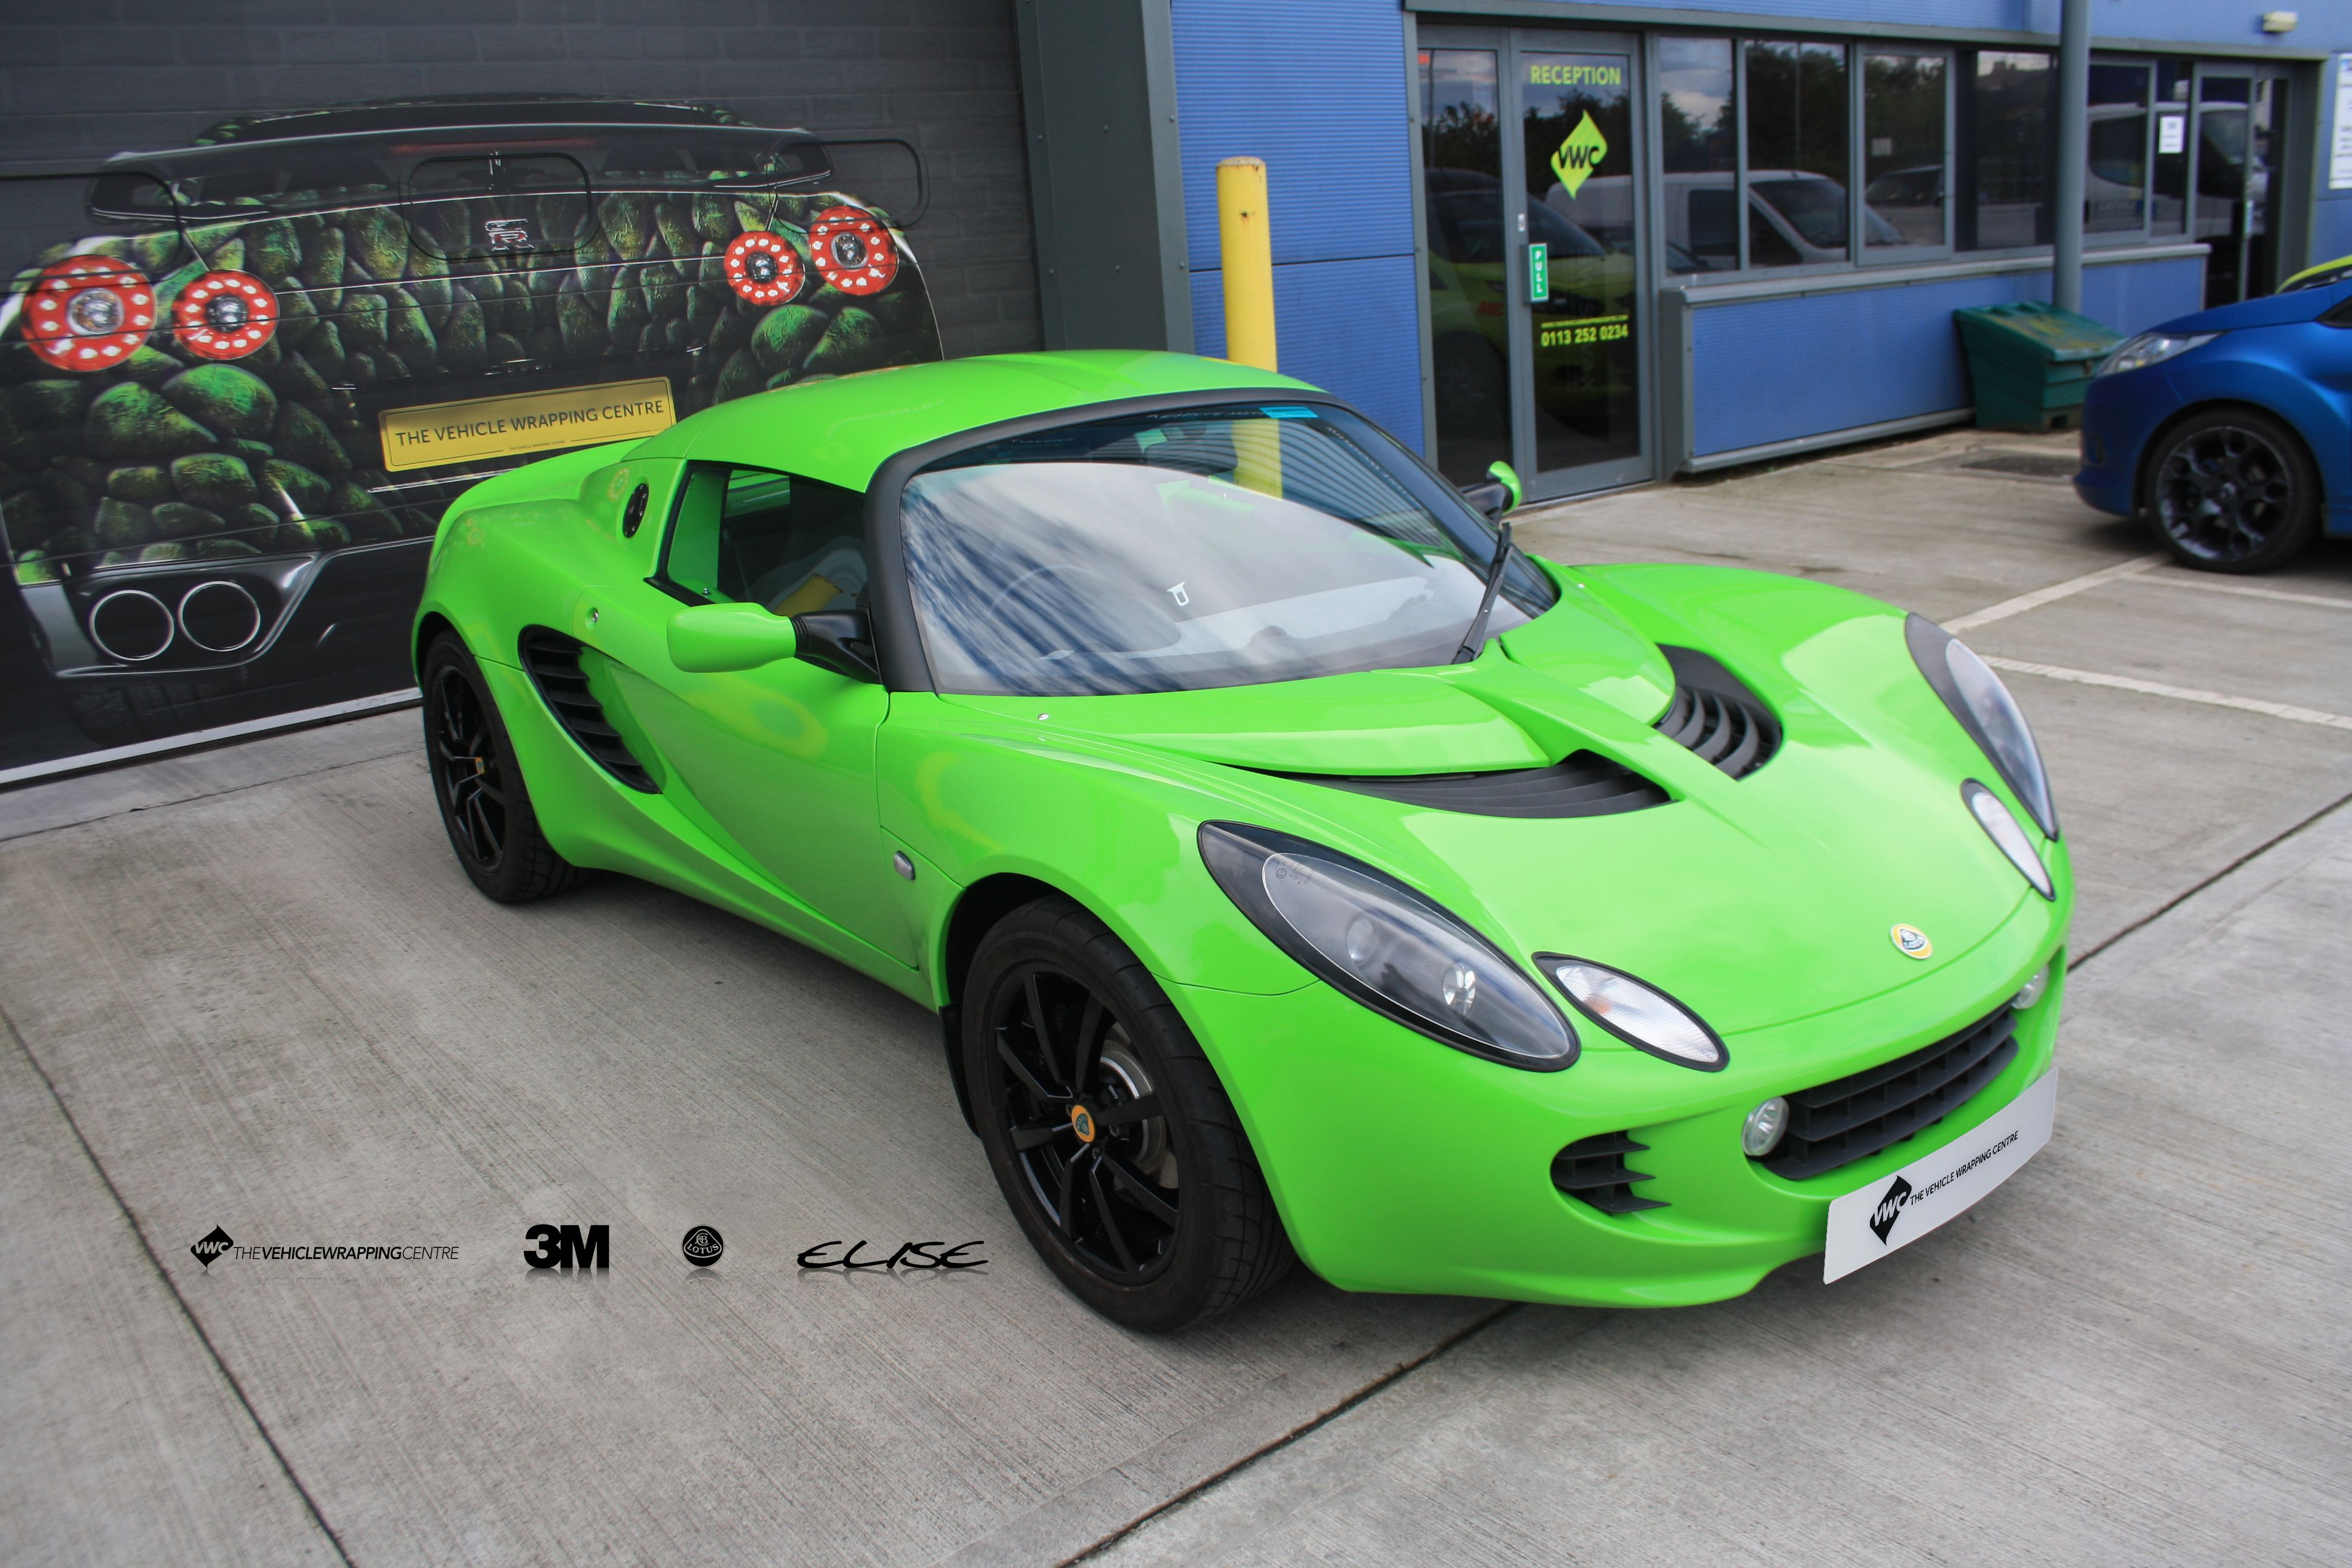 Lotus Elise Avery Grass Green Personal Vehicle Wrap Project